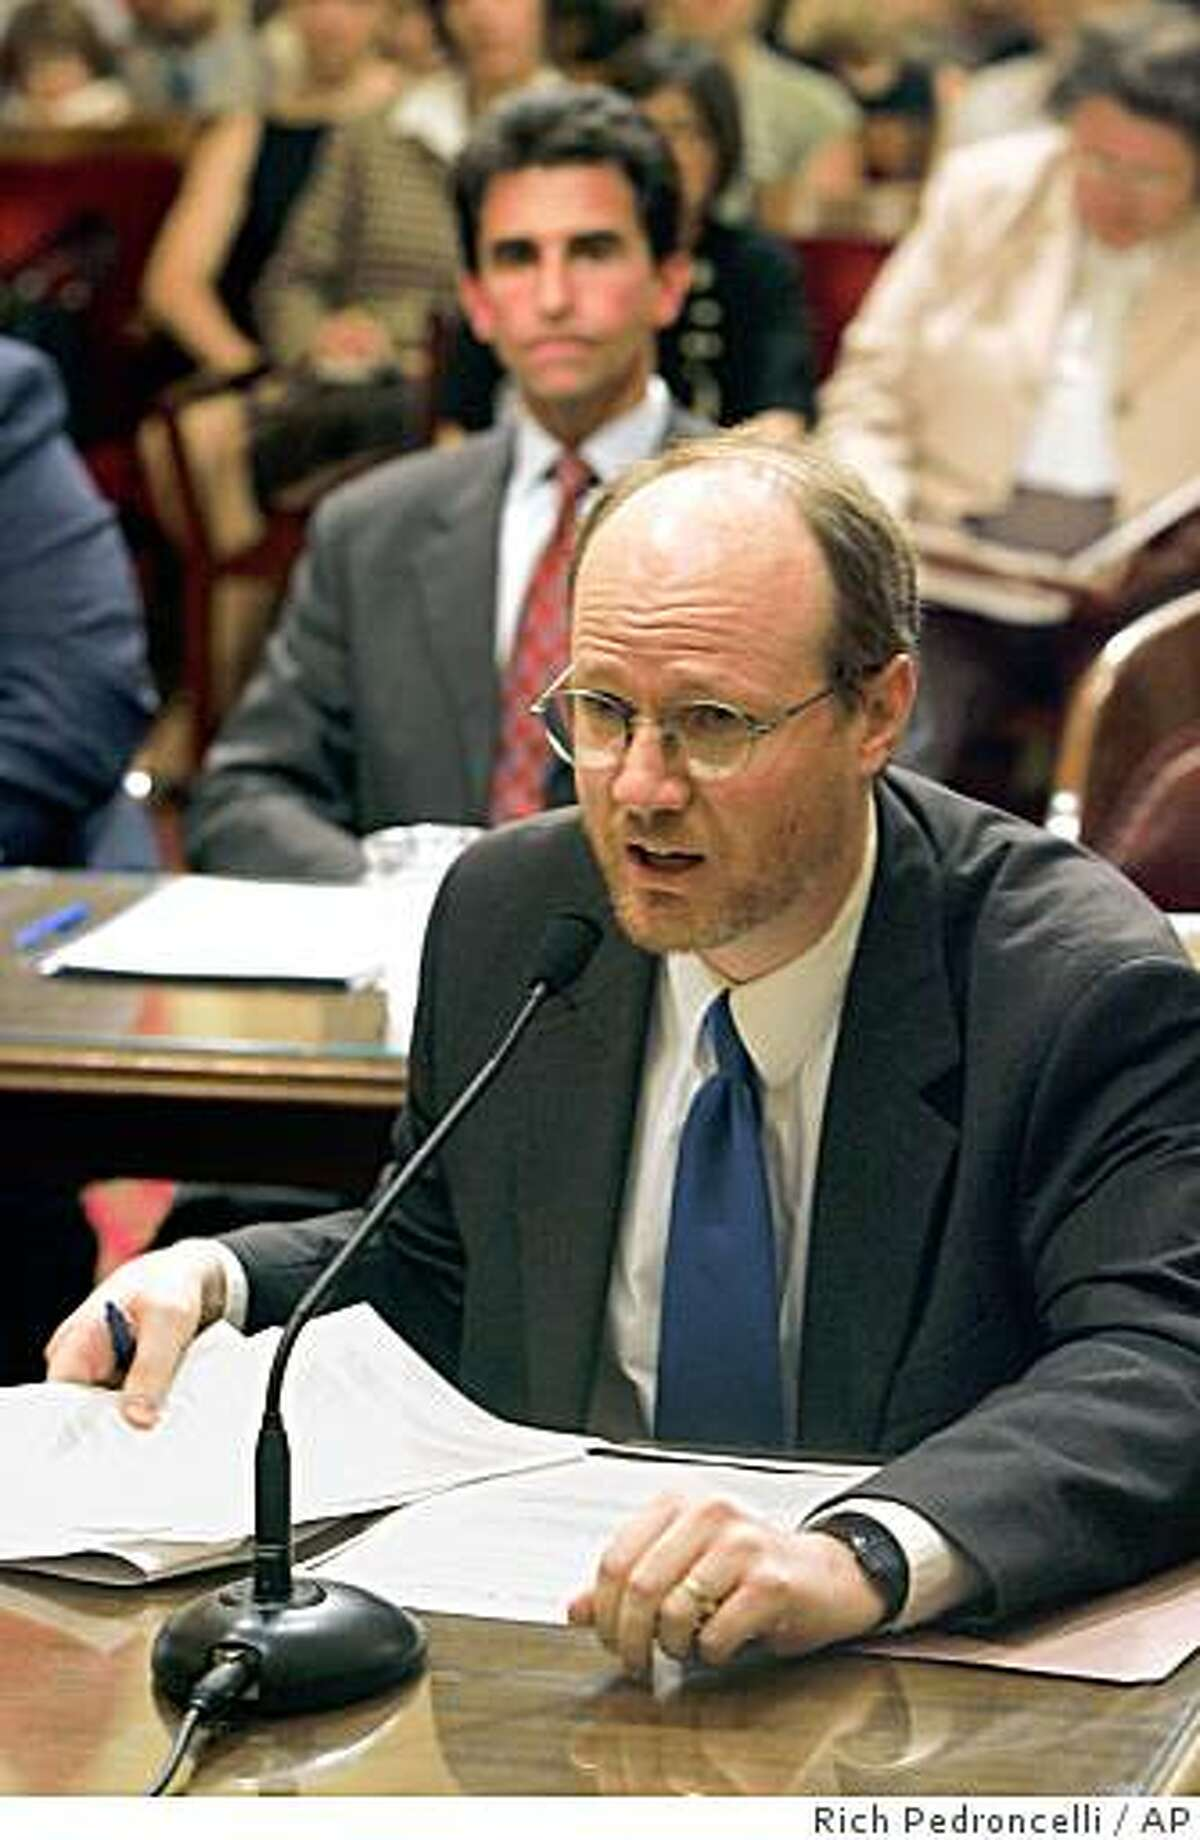 Gay marriage opponent Randy Thomasson urged lawmakers to reject a same-sex marriage bill before the Senate Judiciary committee during a hearing held at the Capitol in Sacramento, Calif., Tuesday, July 12, 2005. The measure, by Assemblyman Mark Leno, D-San Francisco, background, is similar to a same-sex marriage bill that was defeated in the Assembly in June. Despite the opposition it was approved 4-1 by the committee. (AP Photo/Rich Pedroncelli) Ran on: 07-13-2005 Randy Thomasson urges lawmakers to reject the same-sex marriage bill written by Assemblyman Mark Leno (background).